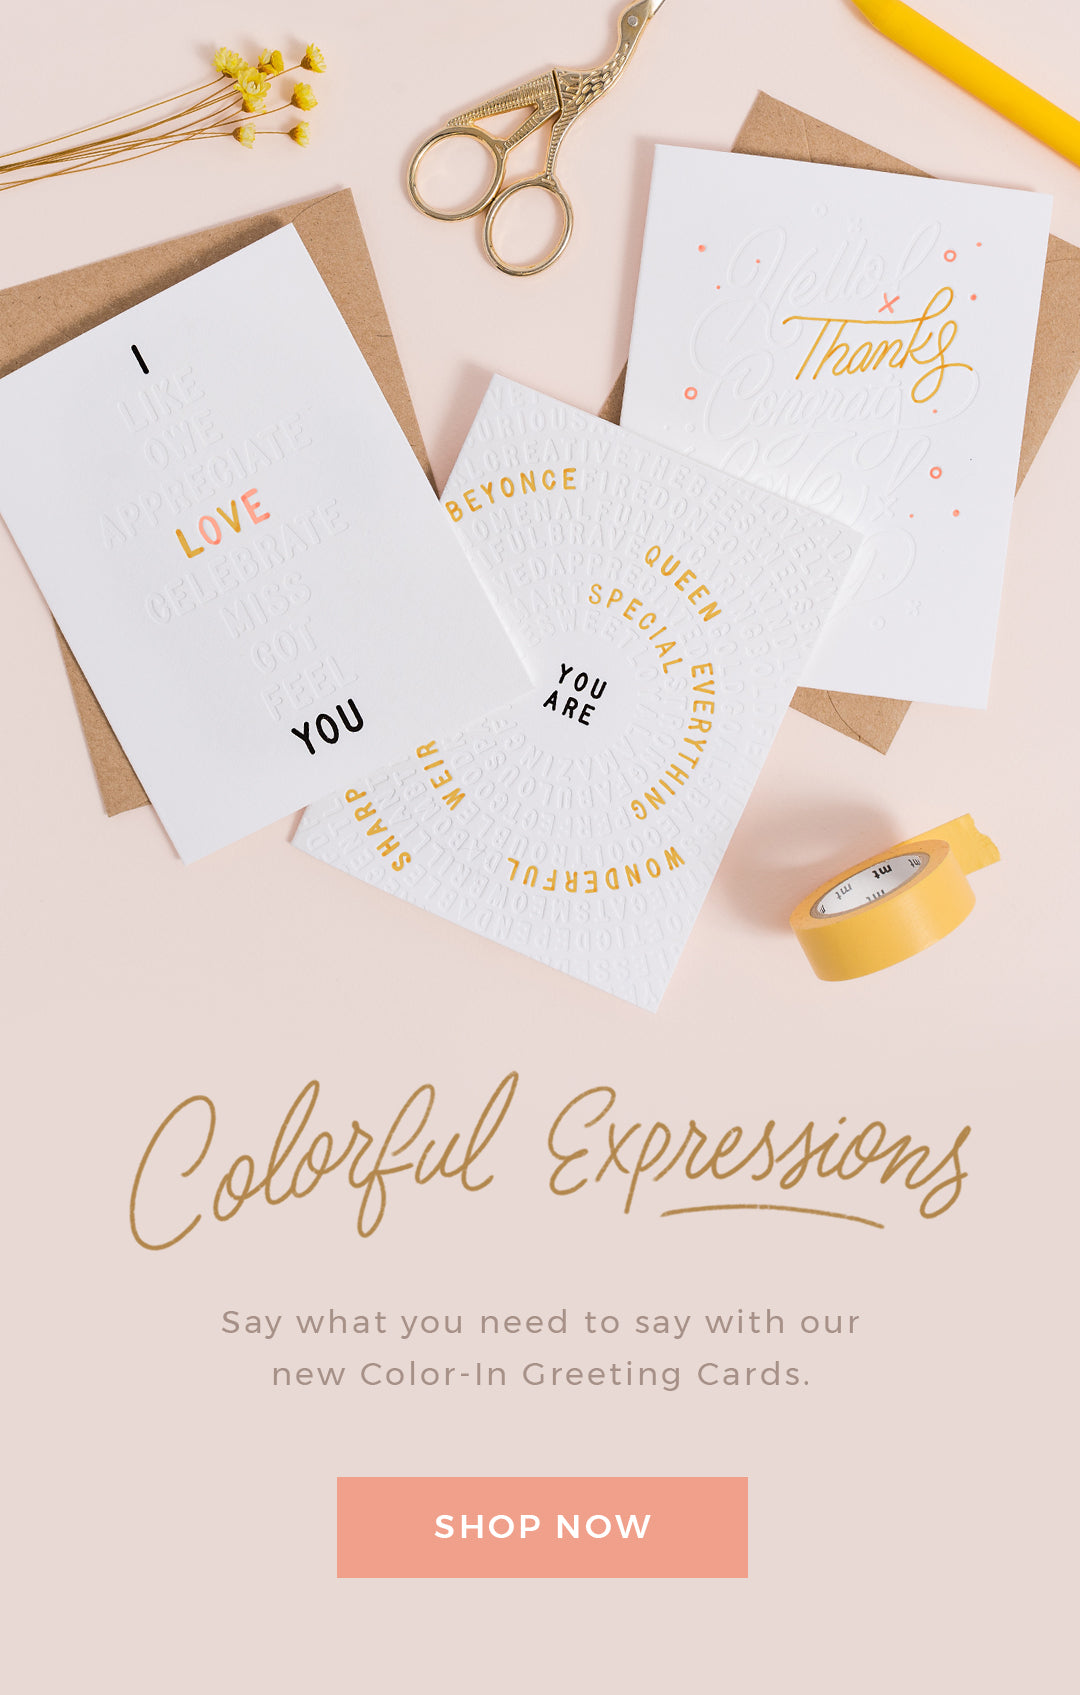 Shop Color-In Greetings Cards by Letterfolk